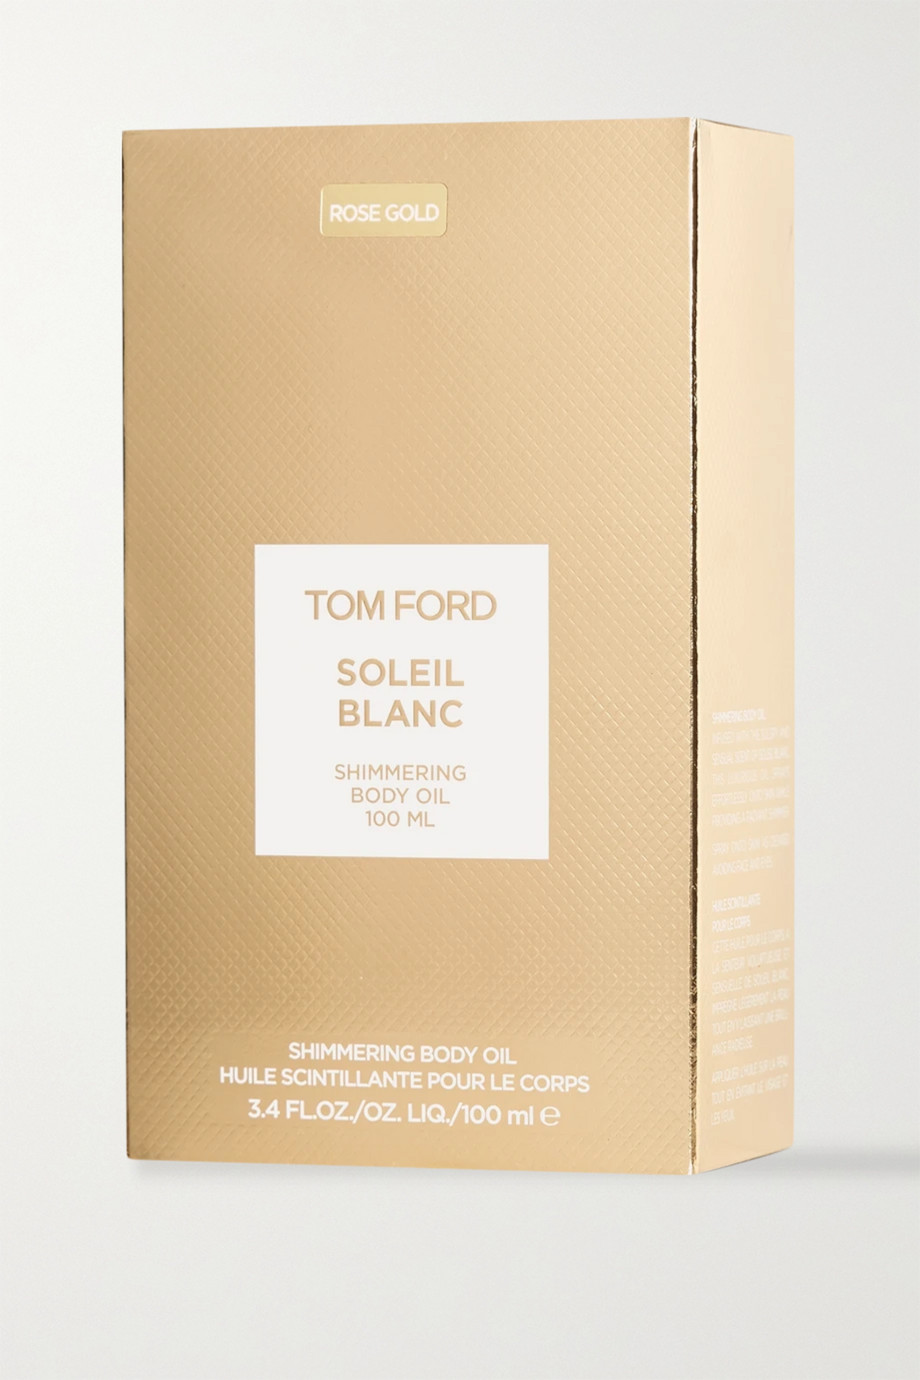 TOM FORD BEAUTY Soleil Blanc Shimmering Rose Gold Body Oil, 100ml